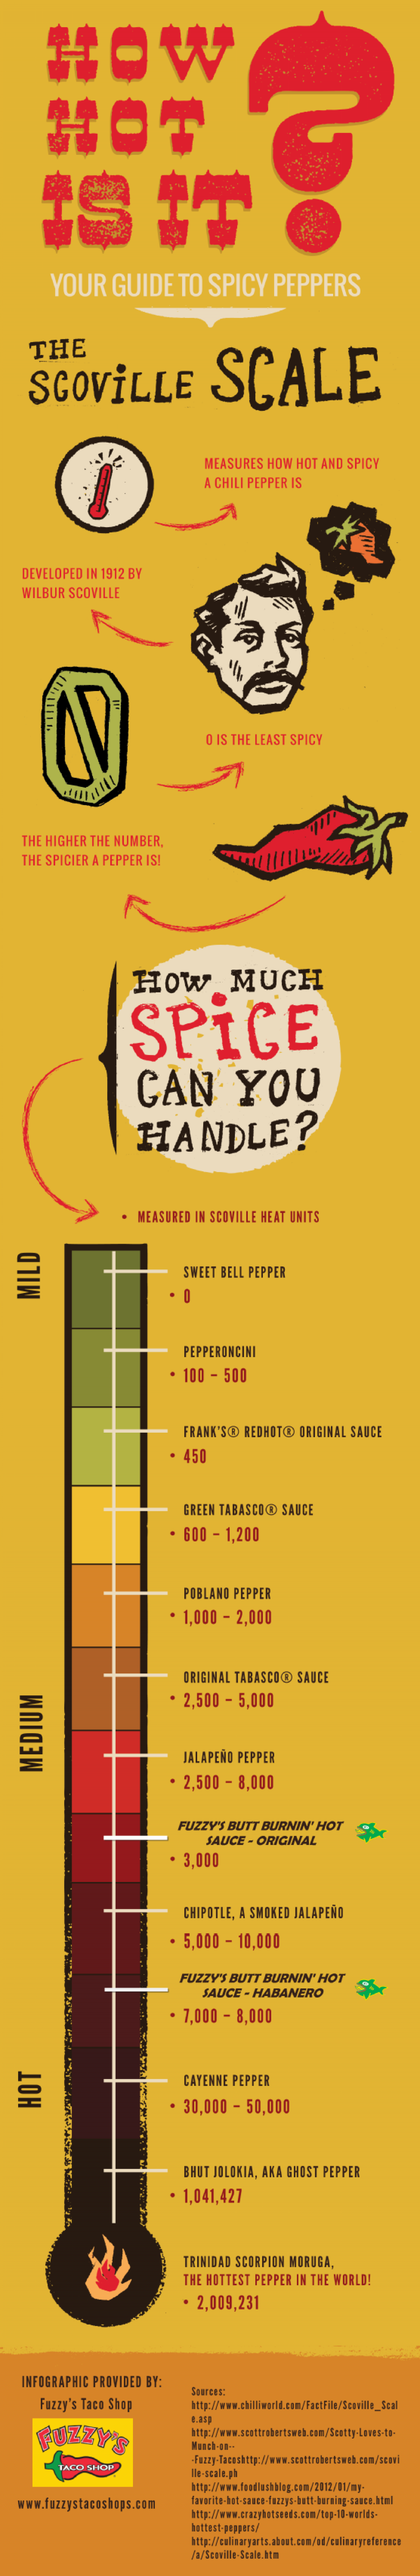 How Hot Is It? Your Guide to Spicy Peppers Infographic